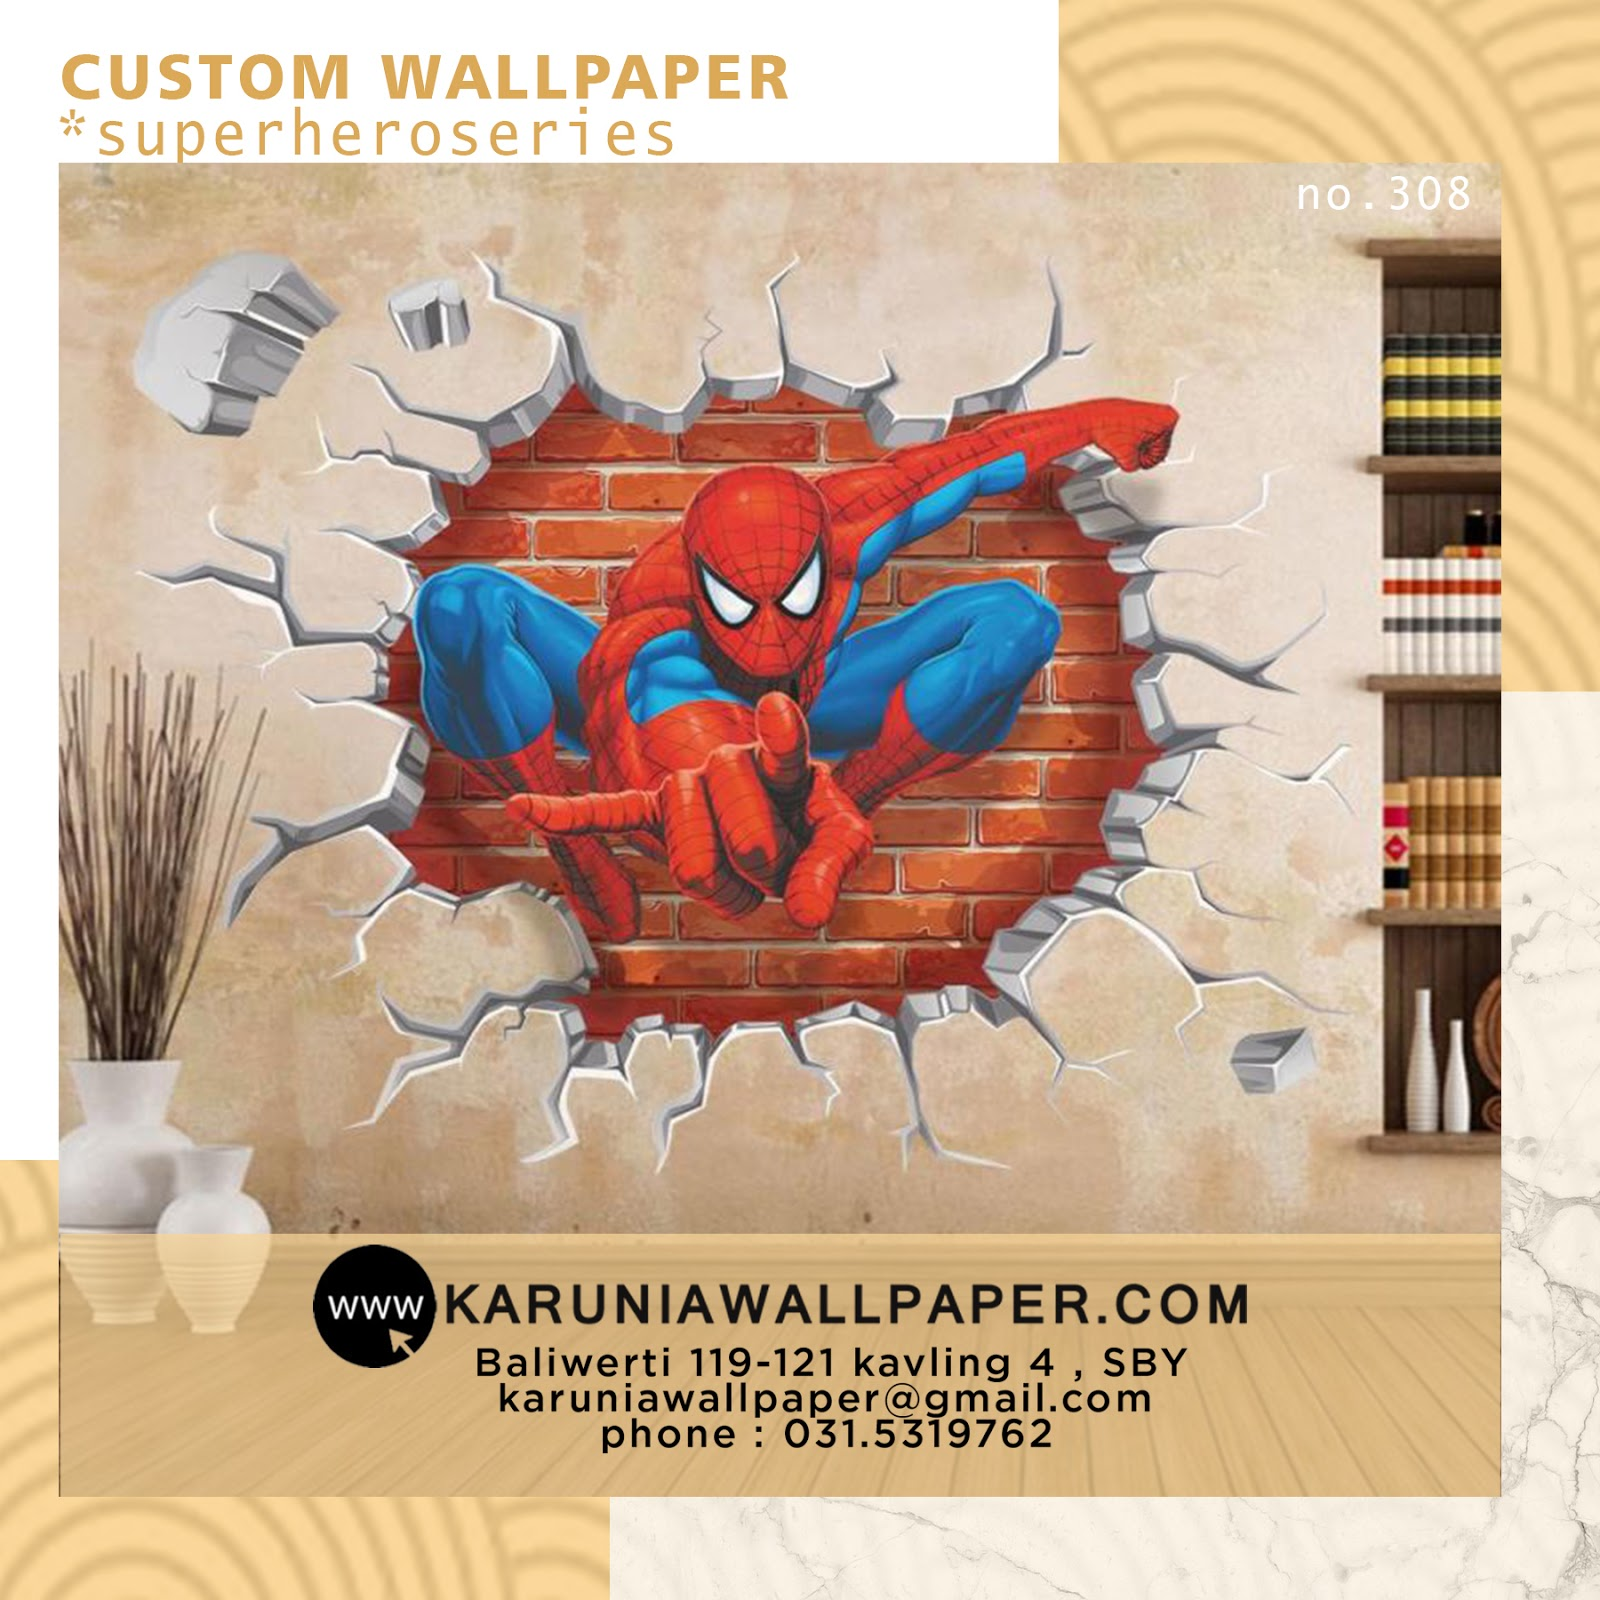 jual wallpaper custom spiderman superhero marvel